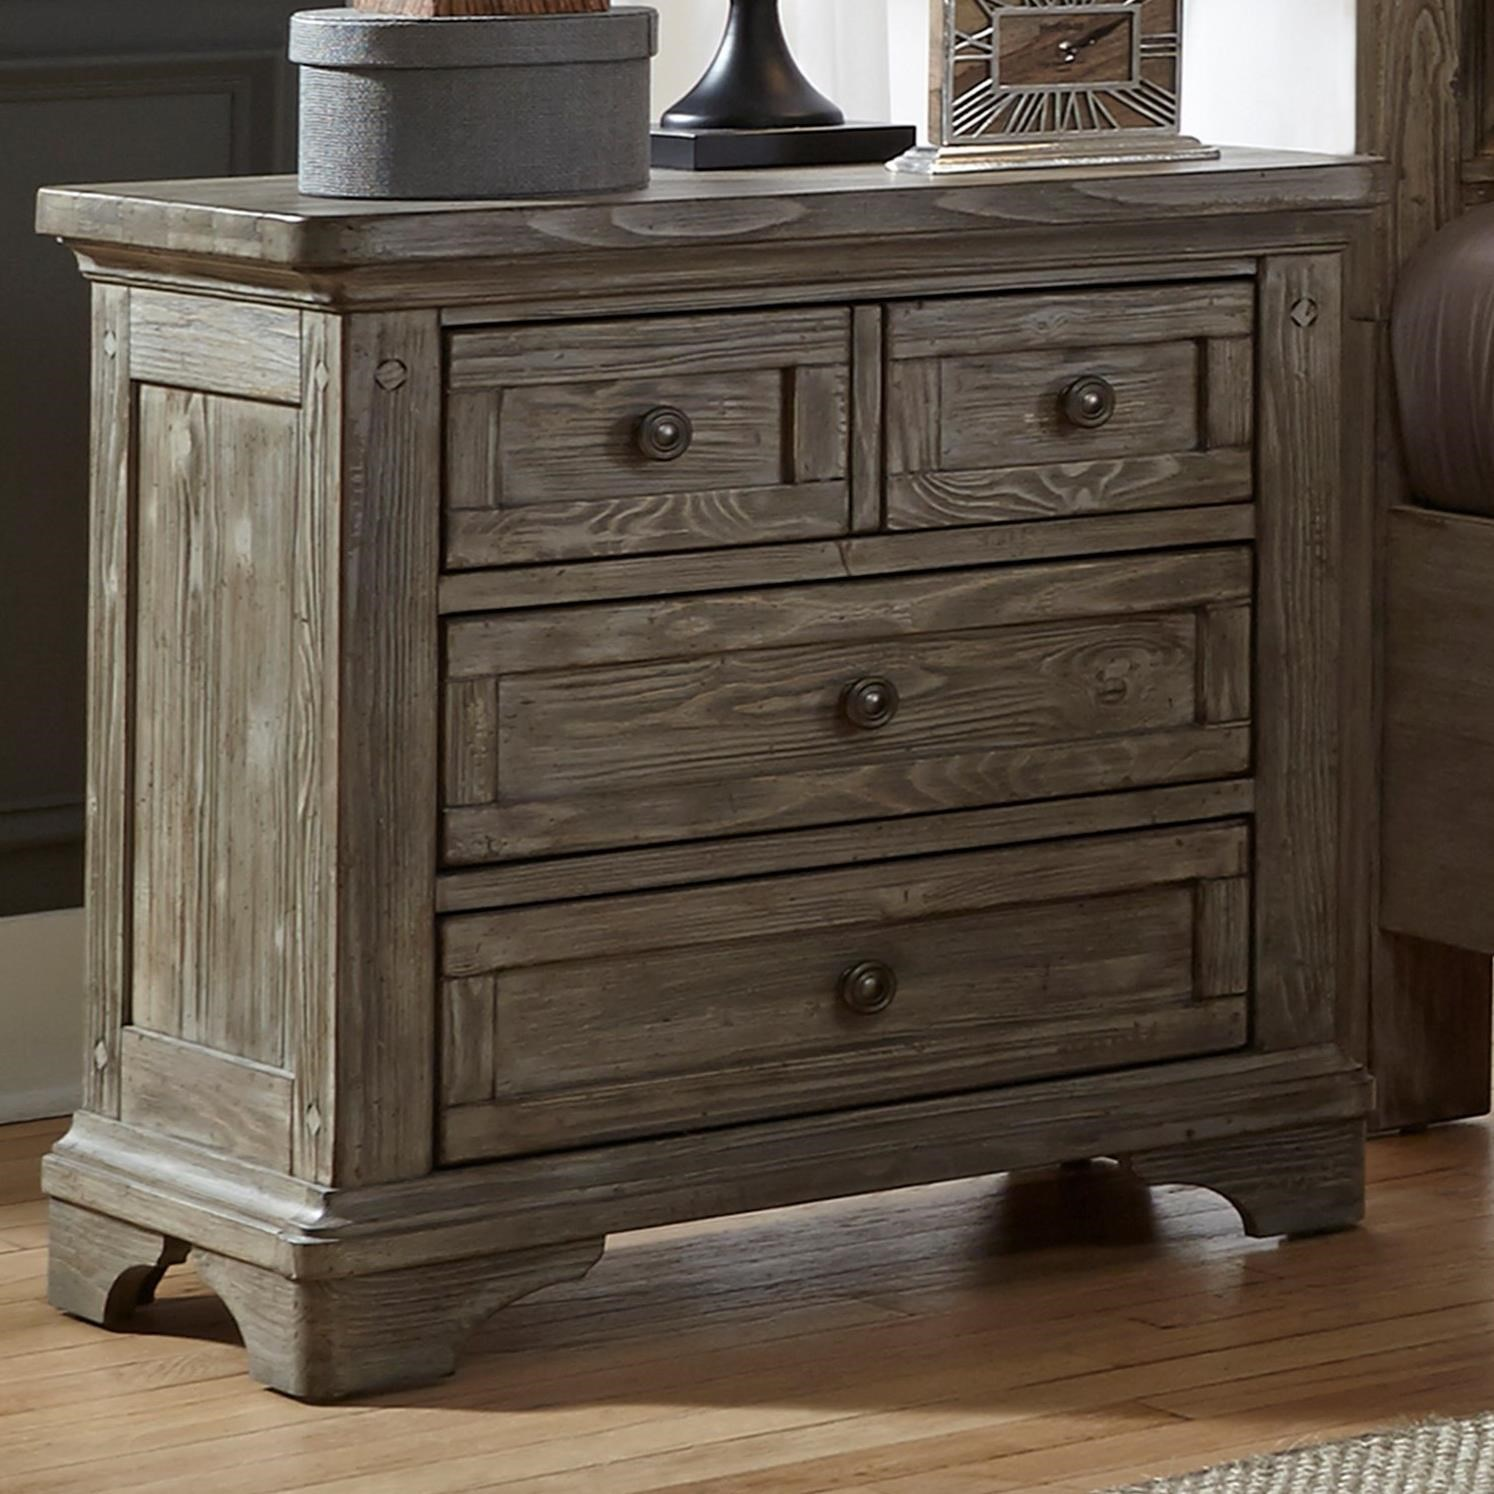 Liberty Furniture HighlandsNightstand; Liberty Furniture HighlandsNightstand